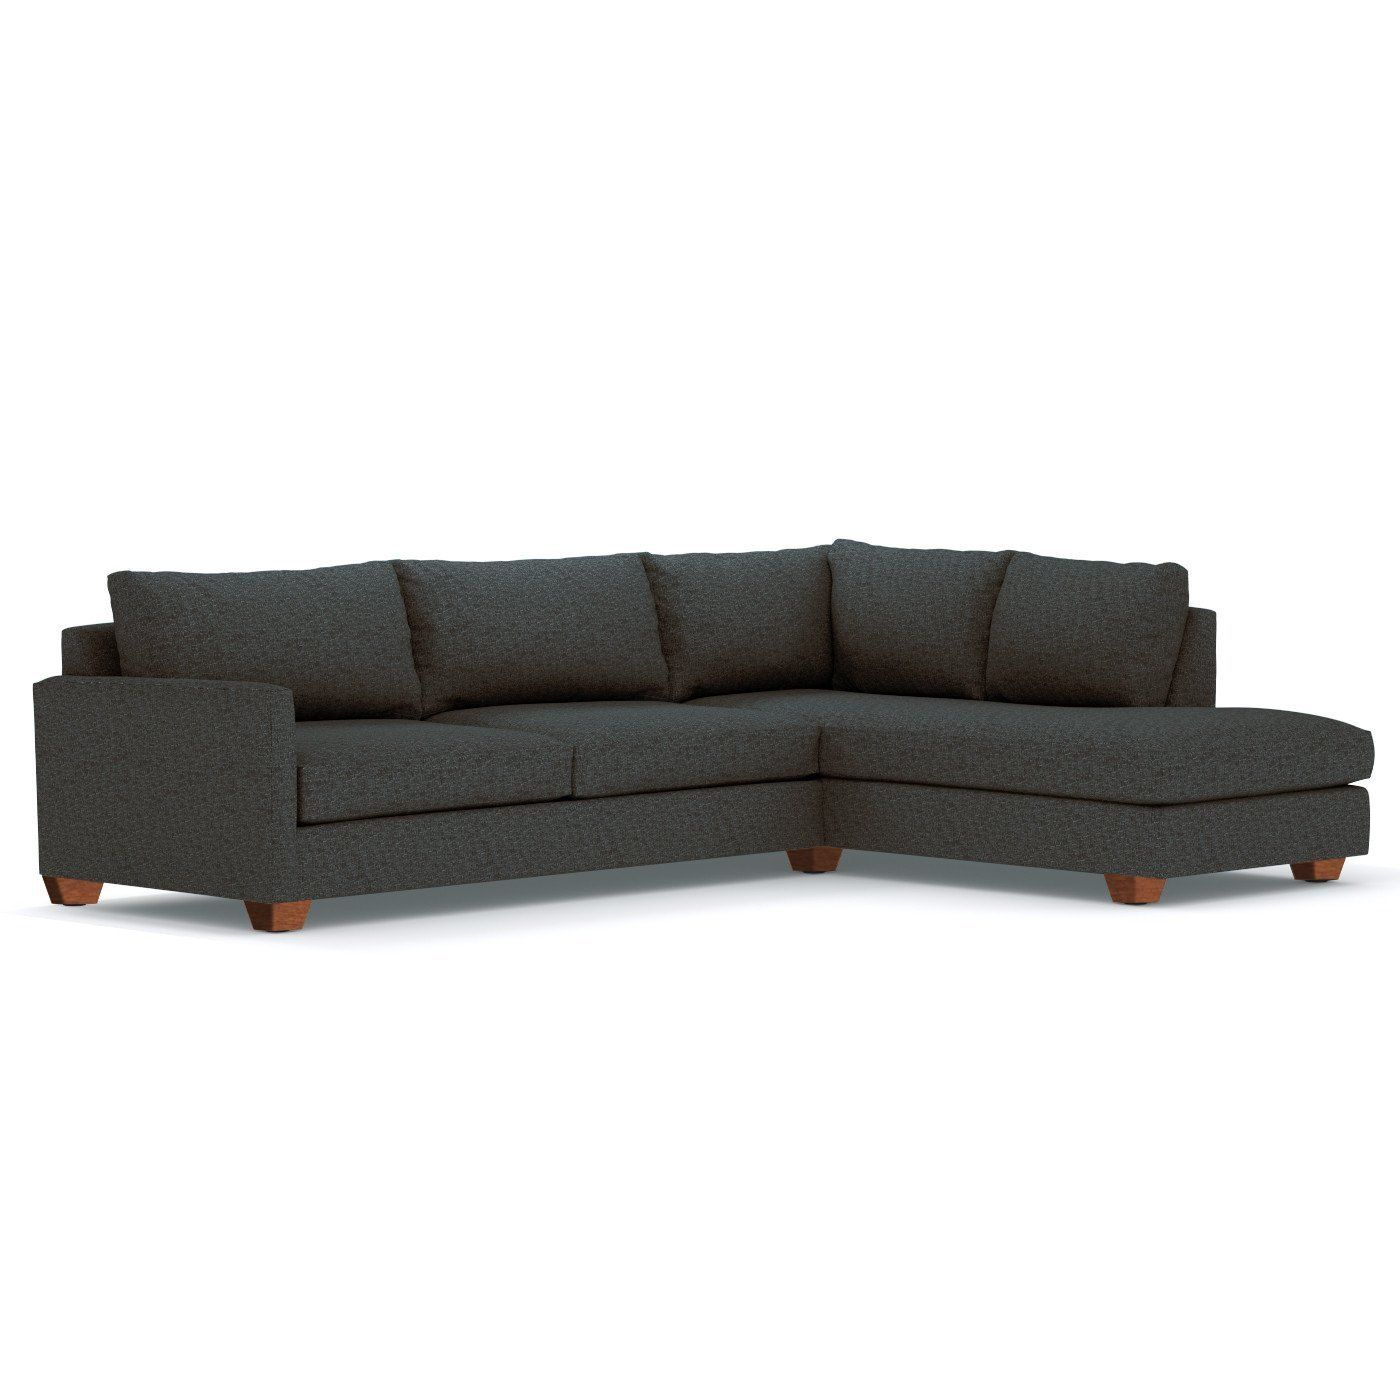 Dinner Sofa Apt 2b Tuxedo Two Piece Sectional Sofa Furniture Sectional